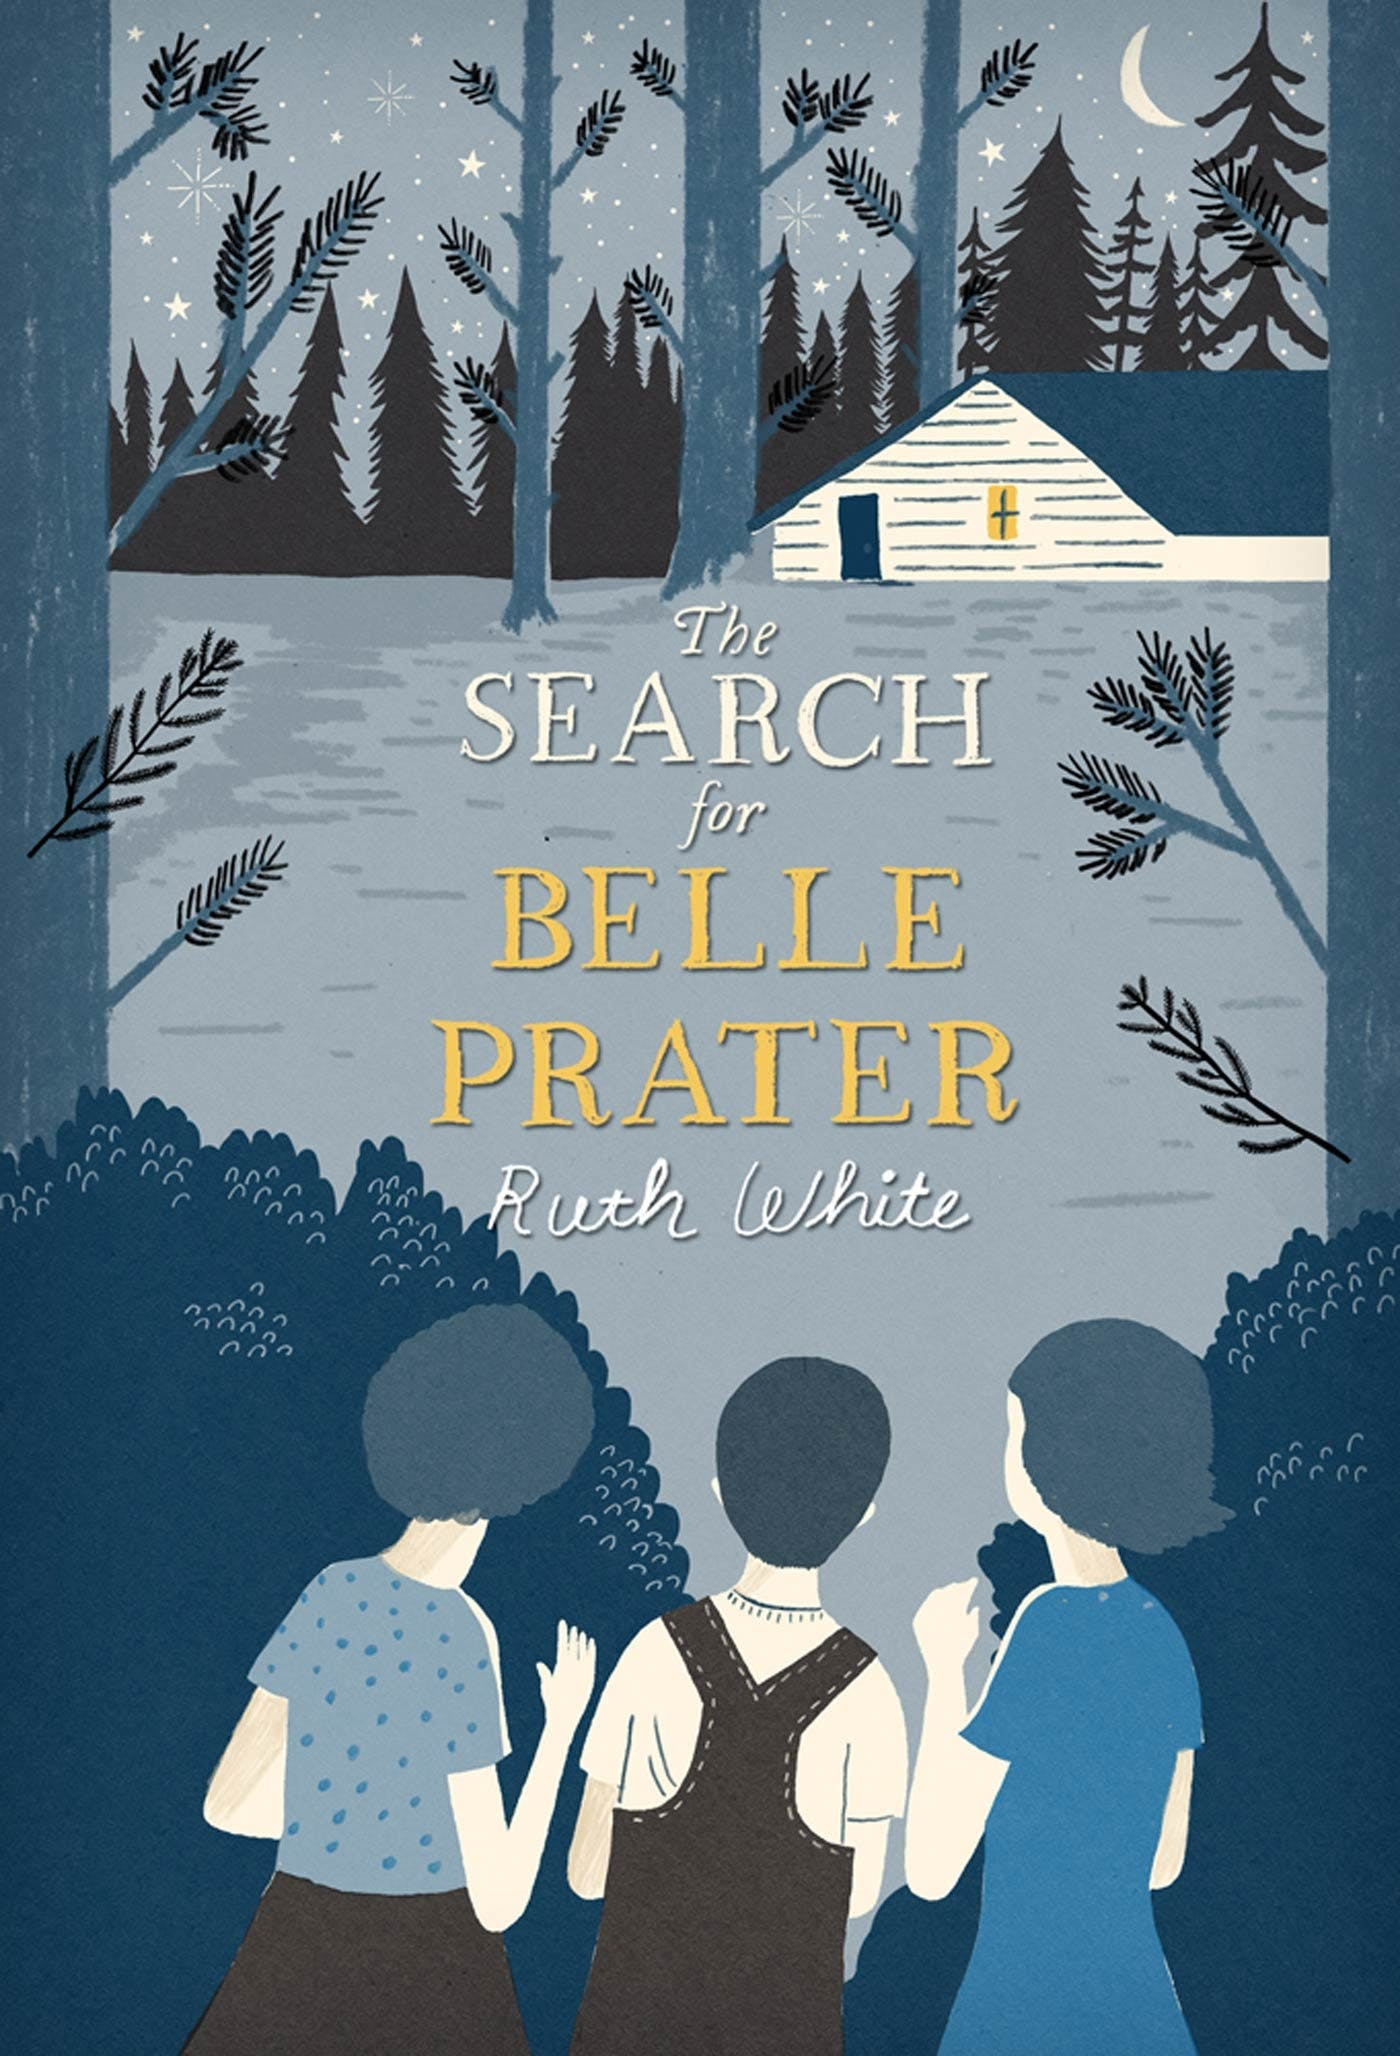 Image of The Search for Belle Prater